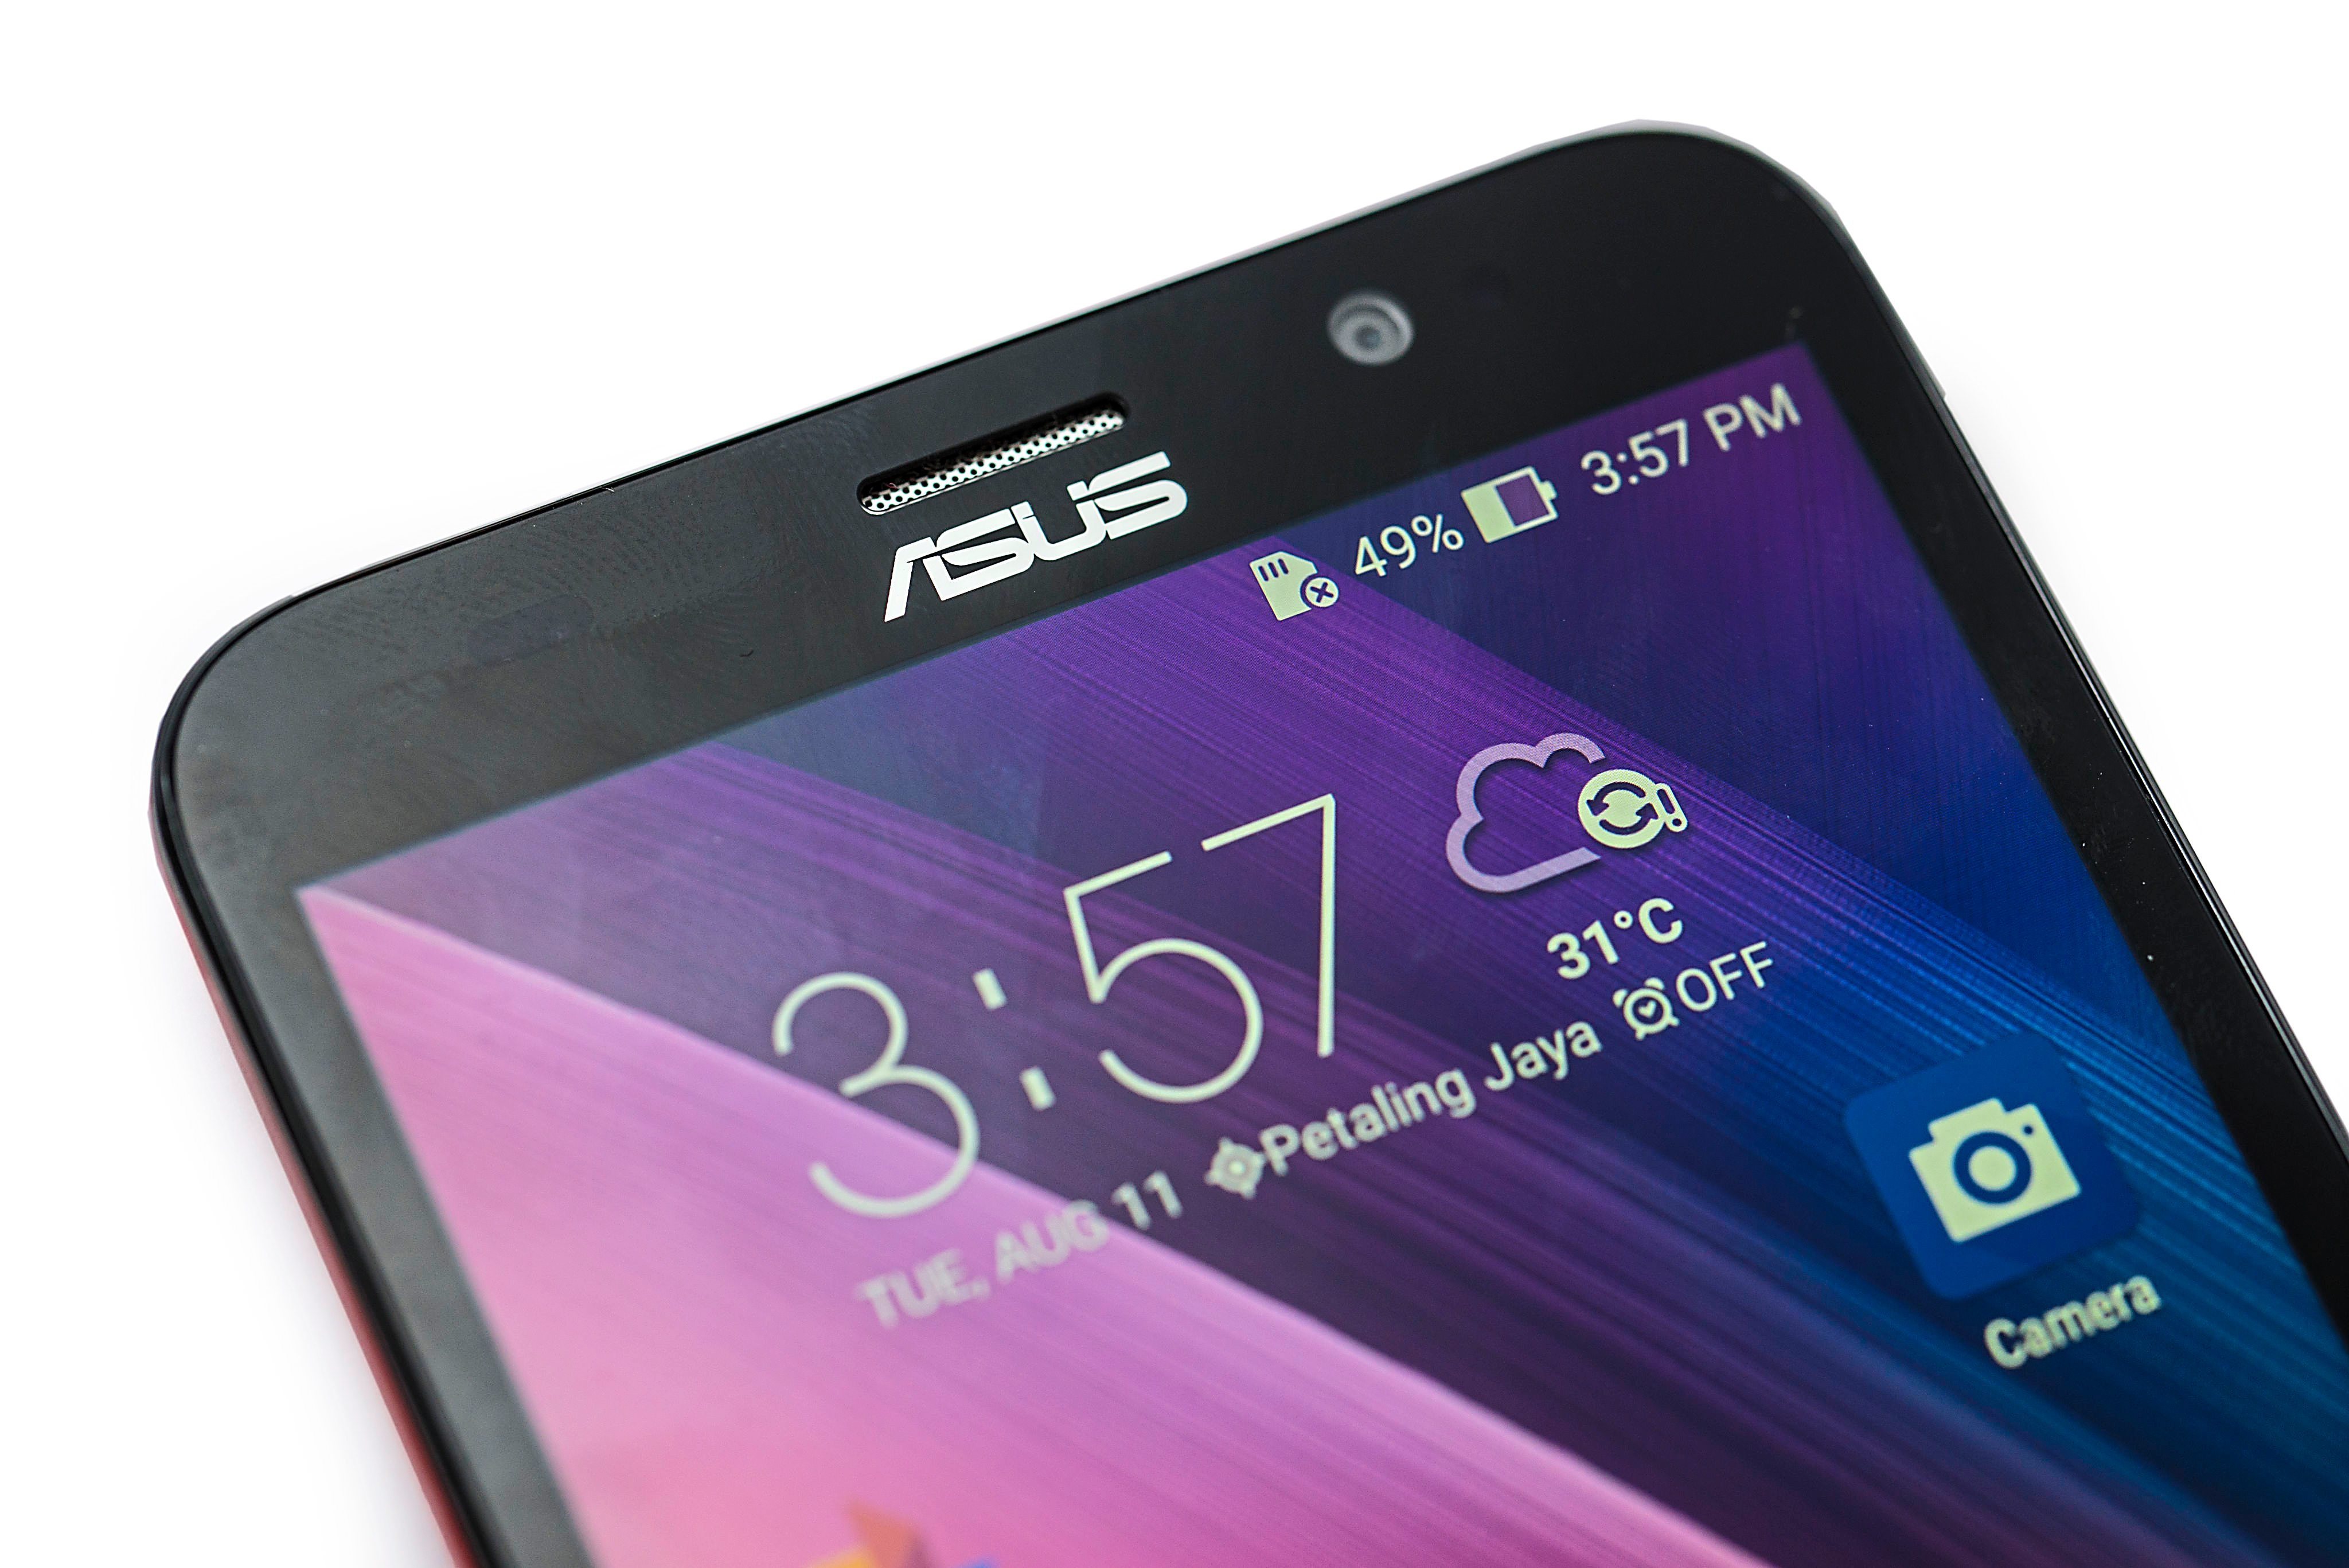 The Zenfone 2 screen is not overly bright and the Bluelight Filter dims the screen for a comfortable reading at night.